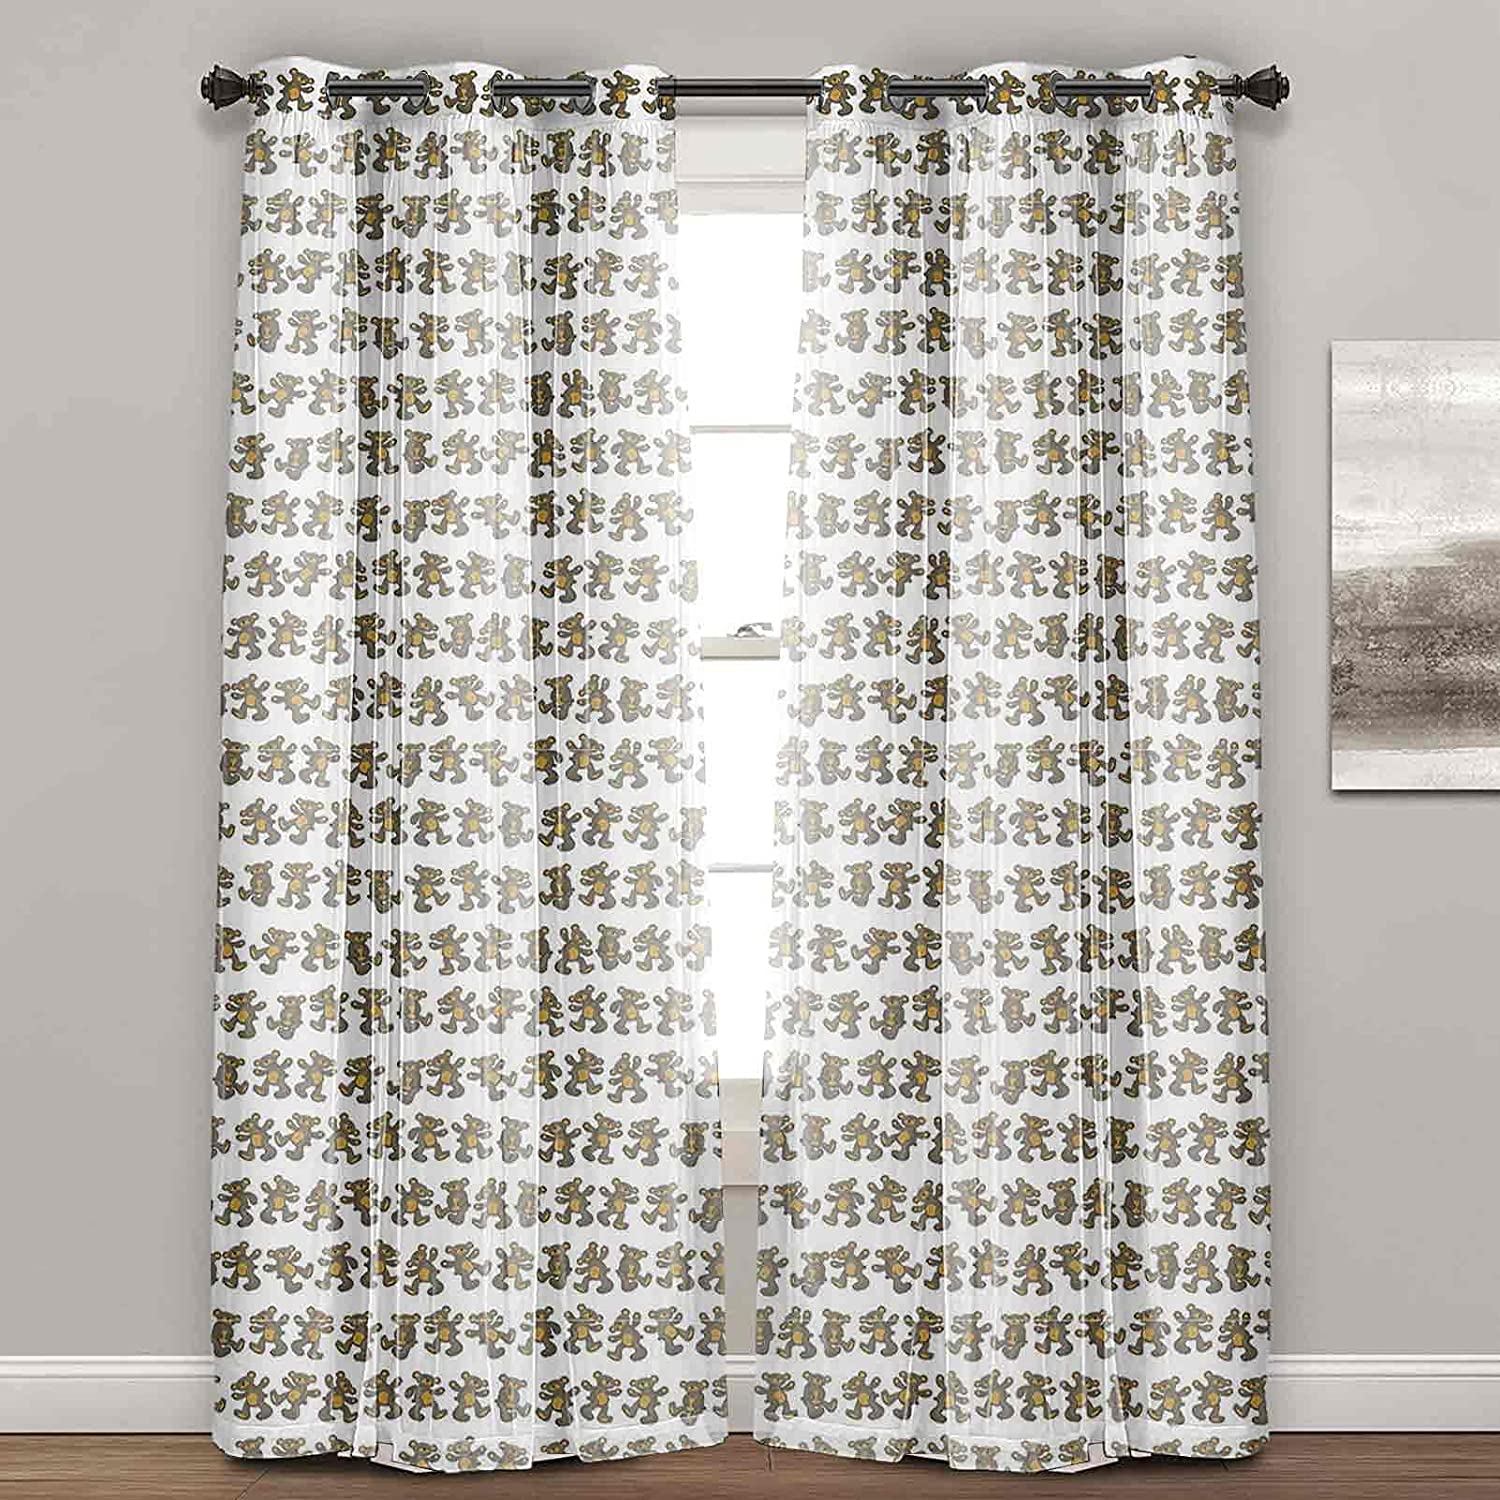 Quantity limited Bear Curtains 5 ☆ popular for Bedroom Simplistic Teddy Patterns Childr